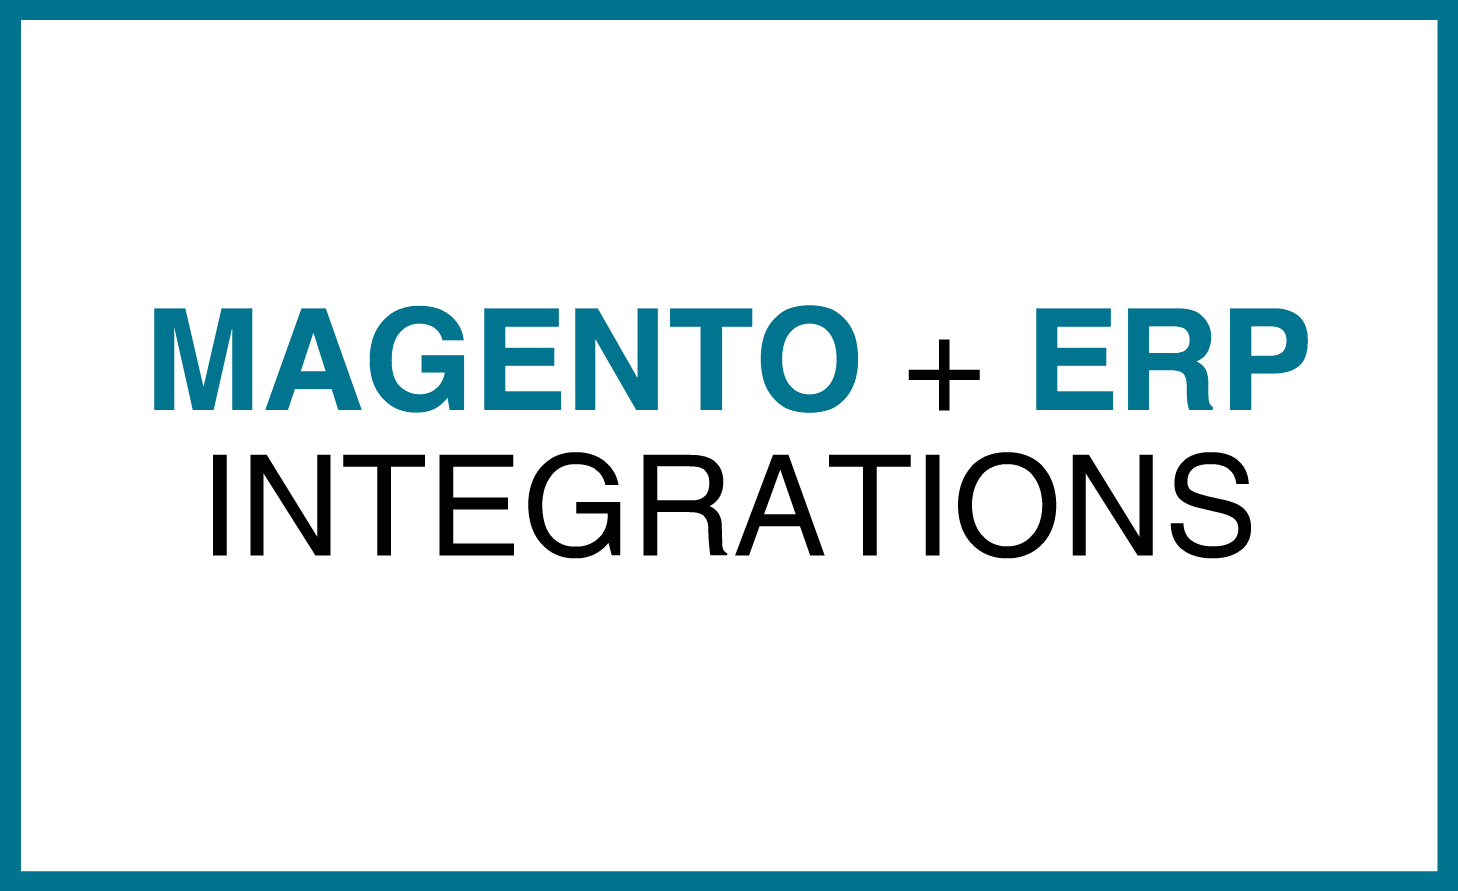 magento and erp integrations.png